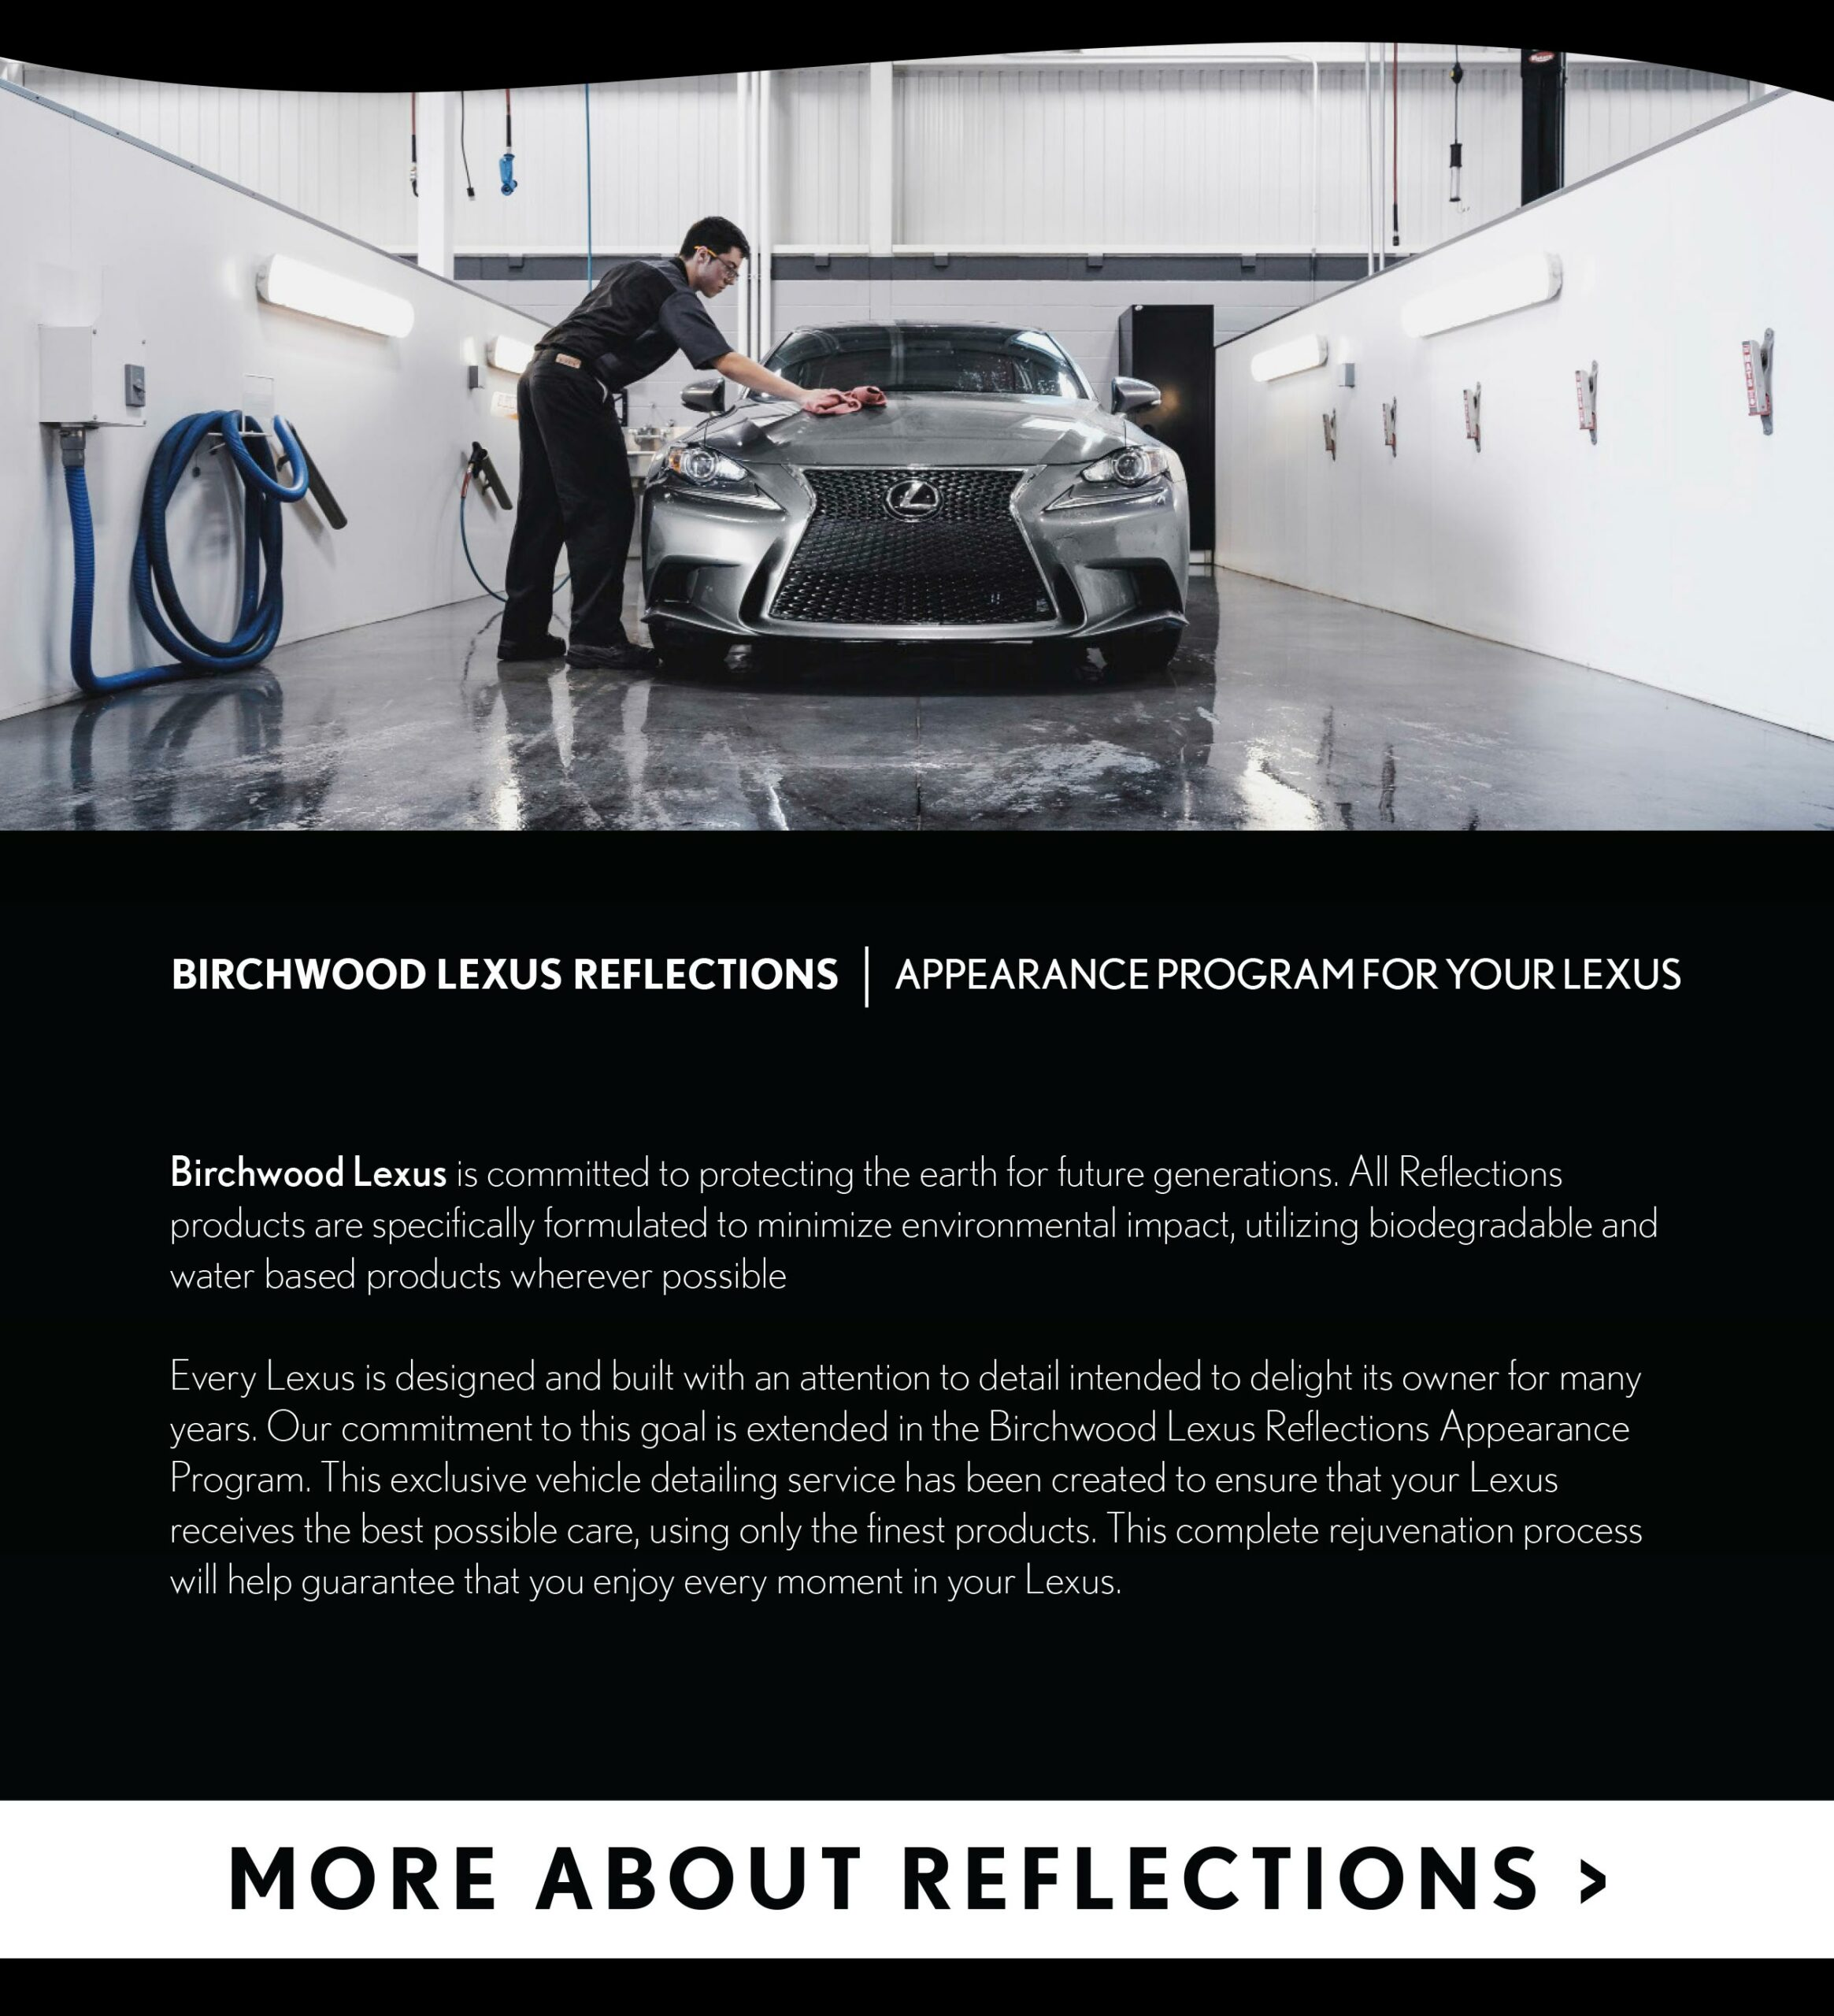 Birchwood Lexus reflections